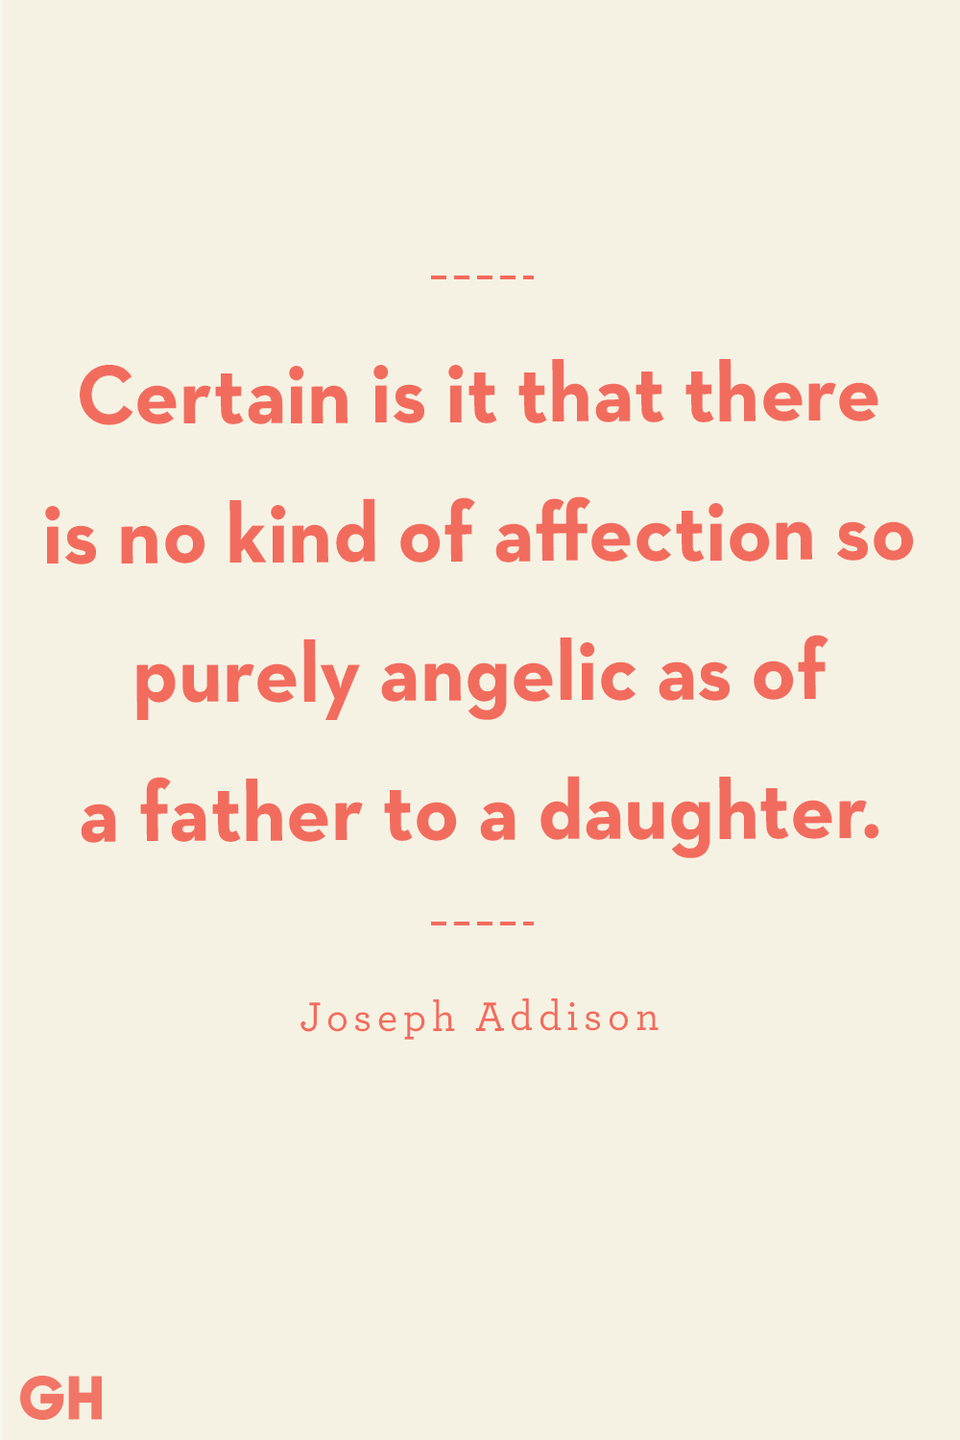 <p>Certain is it that there is no kind of affection so purely angelic as of a father to a daughter.</p>